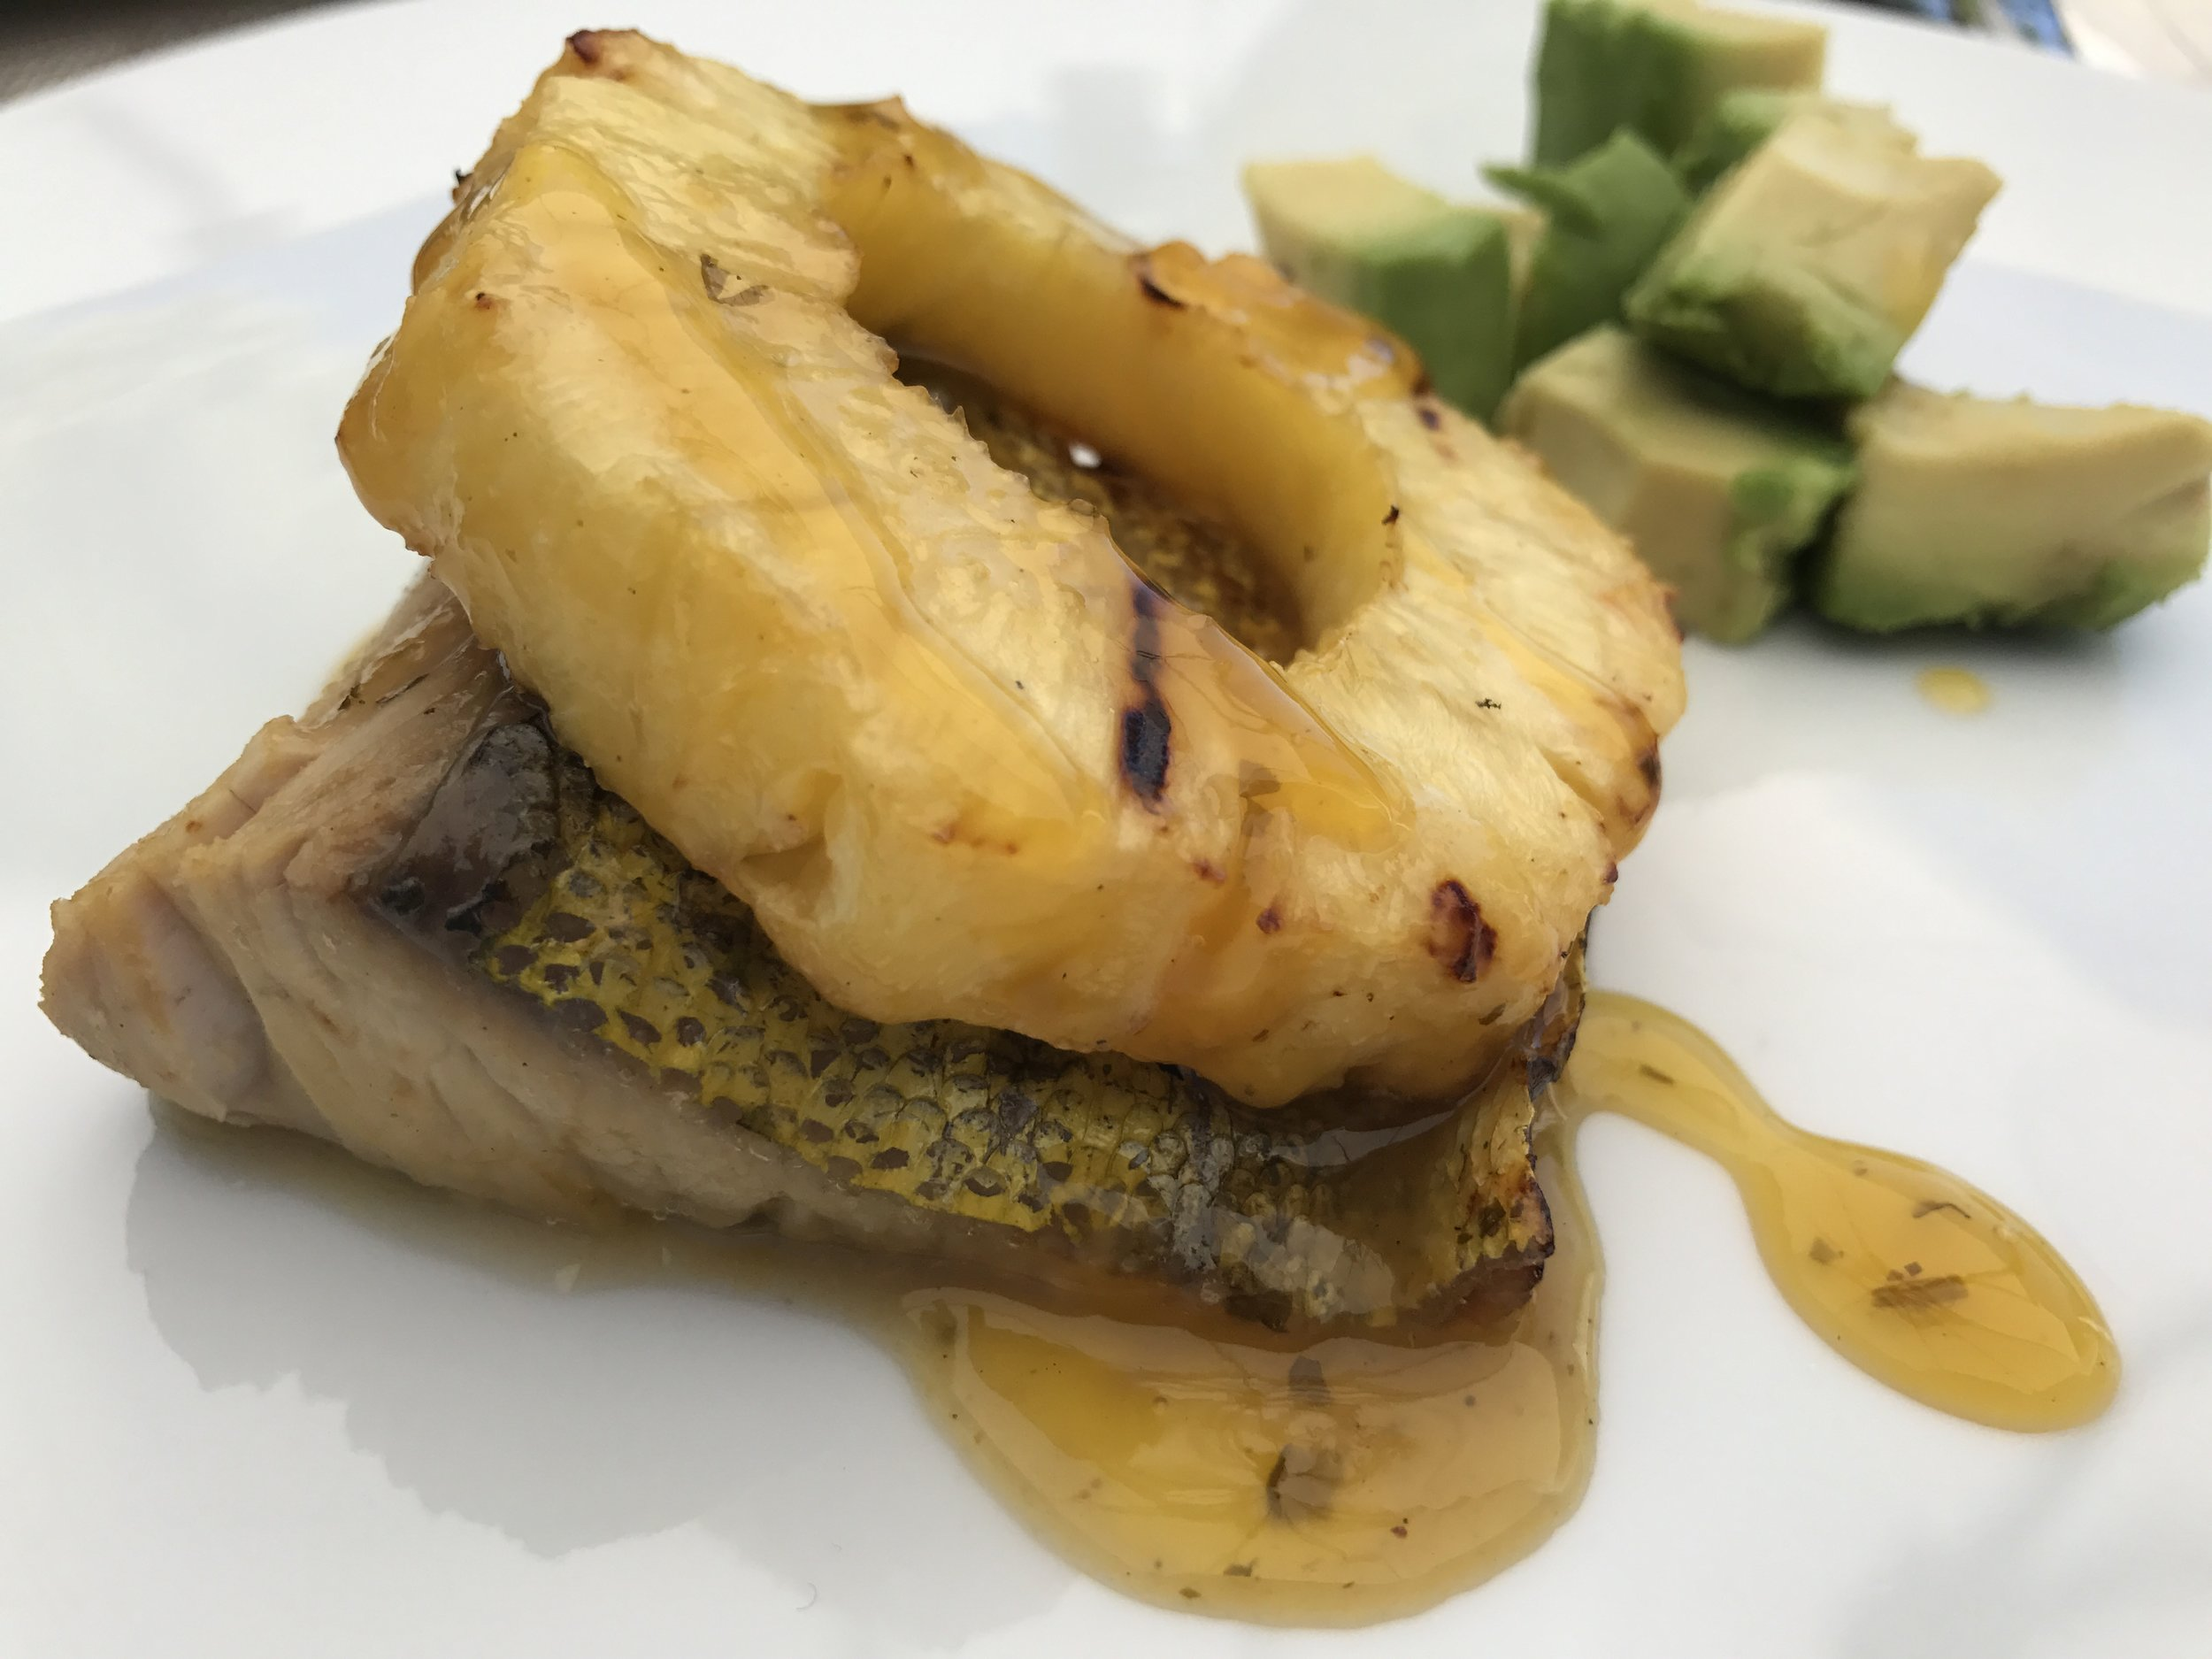 Glorious dinner prepared by my Husband on Sunday night! Grilled mahi-mahi with grilled pineapple, all drizzled with a decadent mango sauce. Loved it! It reminded us of our honeymoon in Bora Bora =)